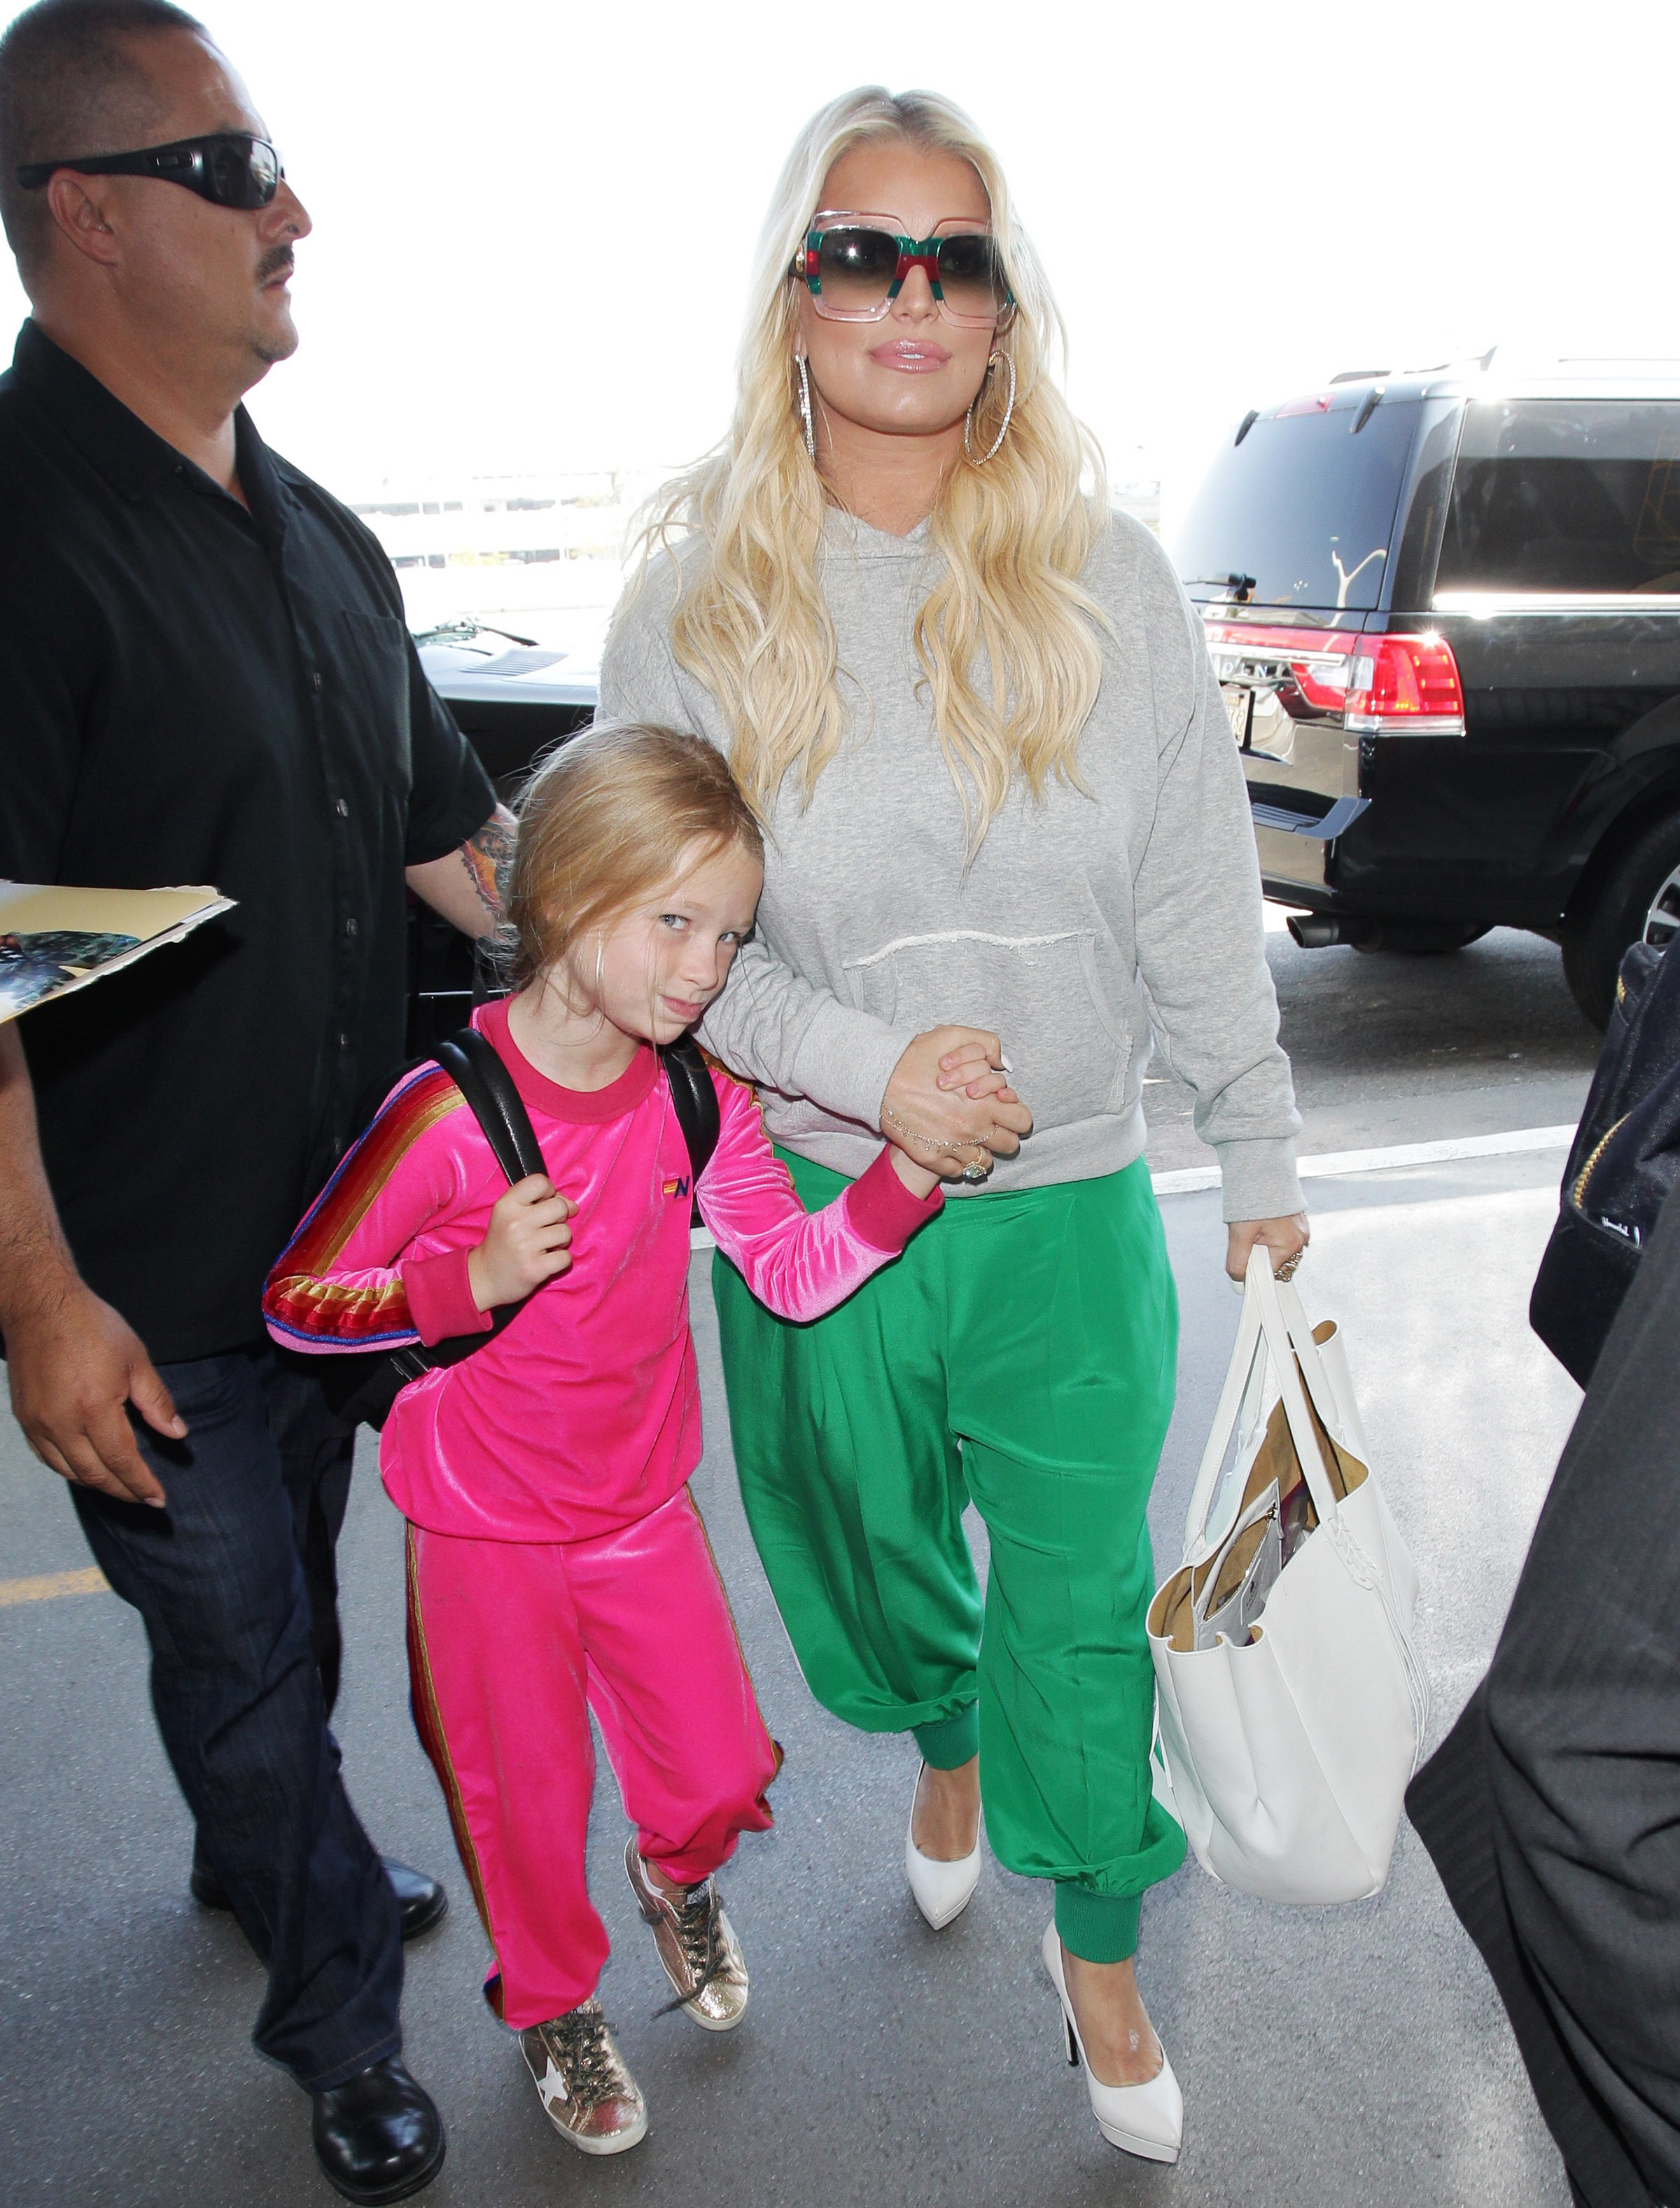 Jessica Simpson and Maxwell Drew Johnson arrive at LAX Airport in Los Angeles on May 9, 2018.